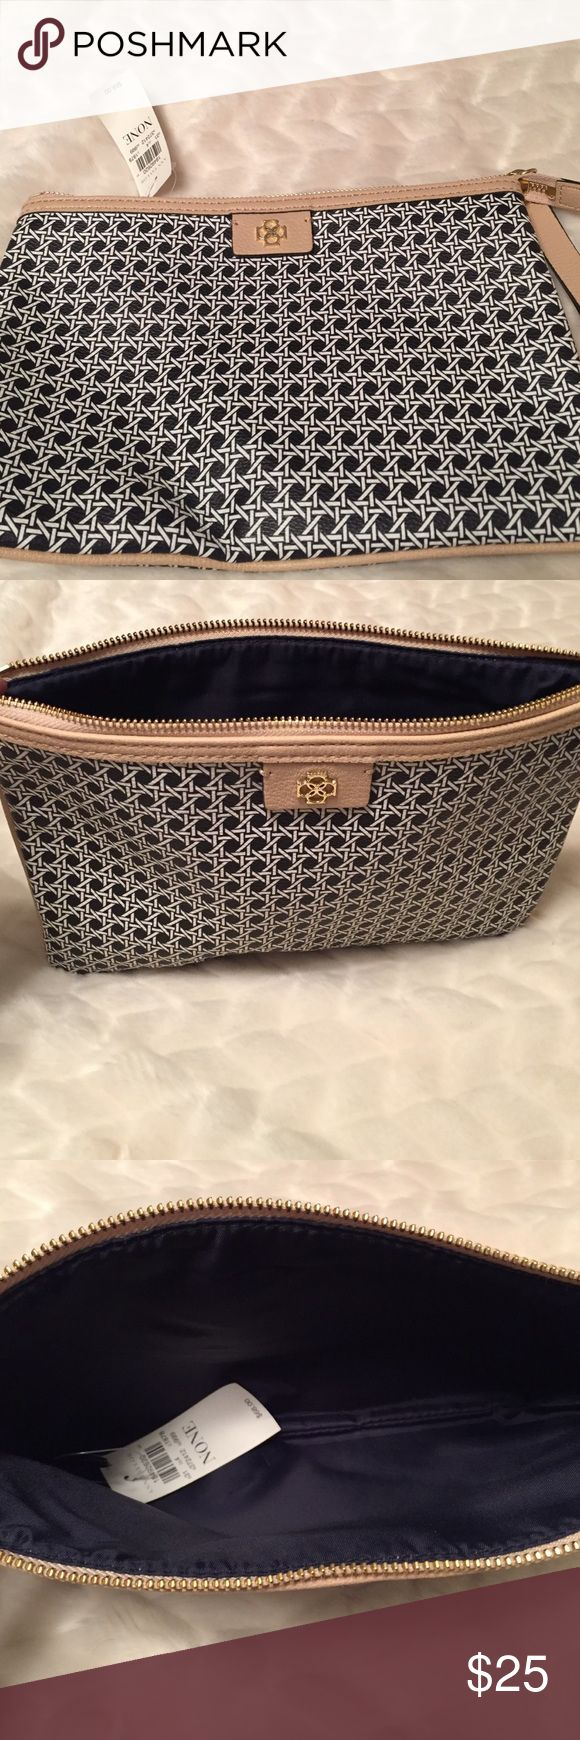 Ann Taylor clutch bag with handle Black and white woven pattern with beige trim. Ann Taylor Bags Clutches & Wristlets